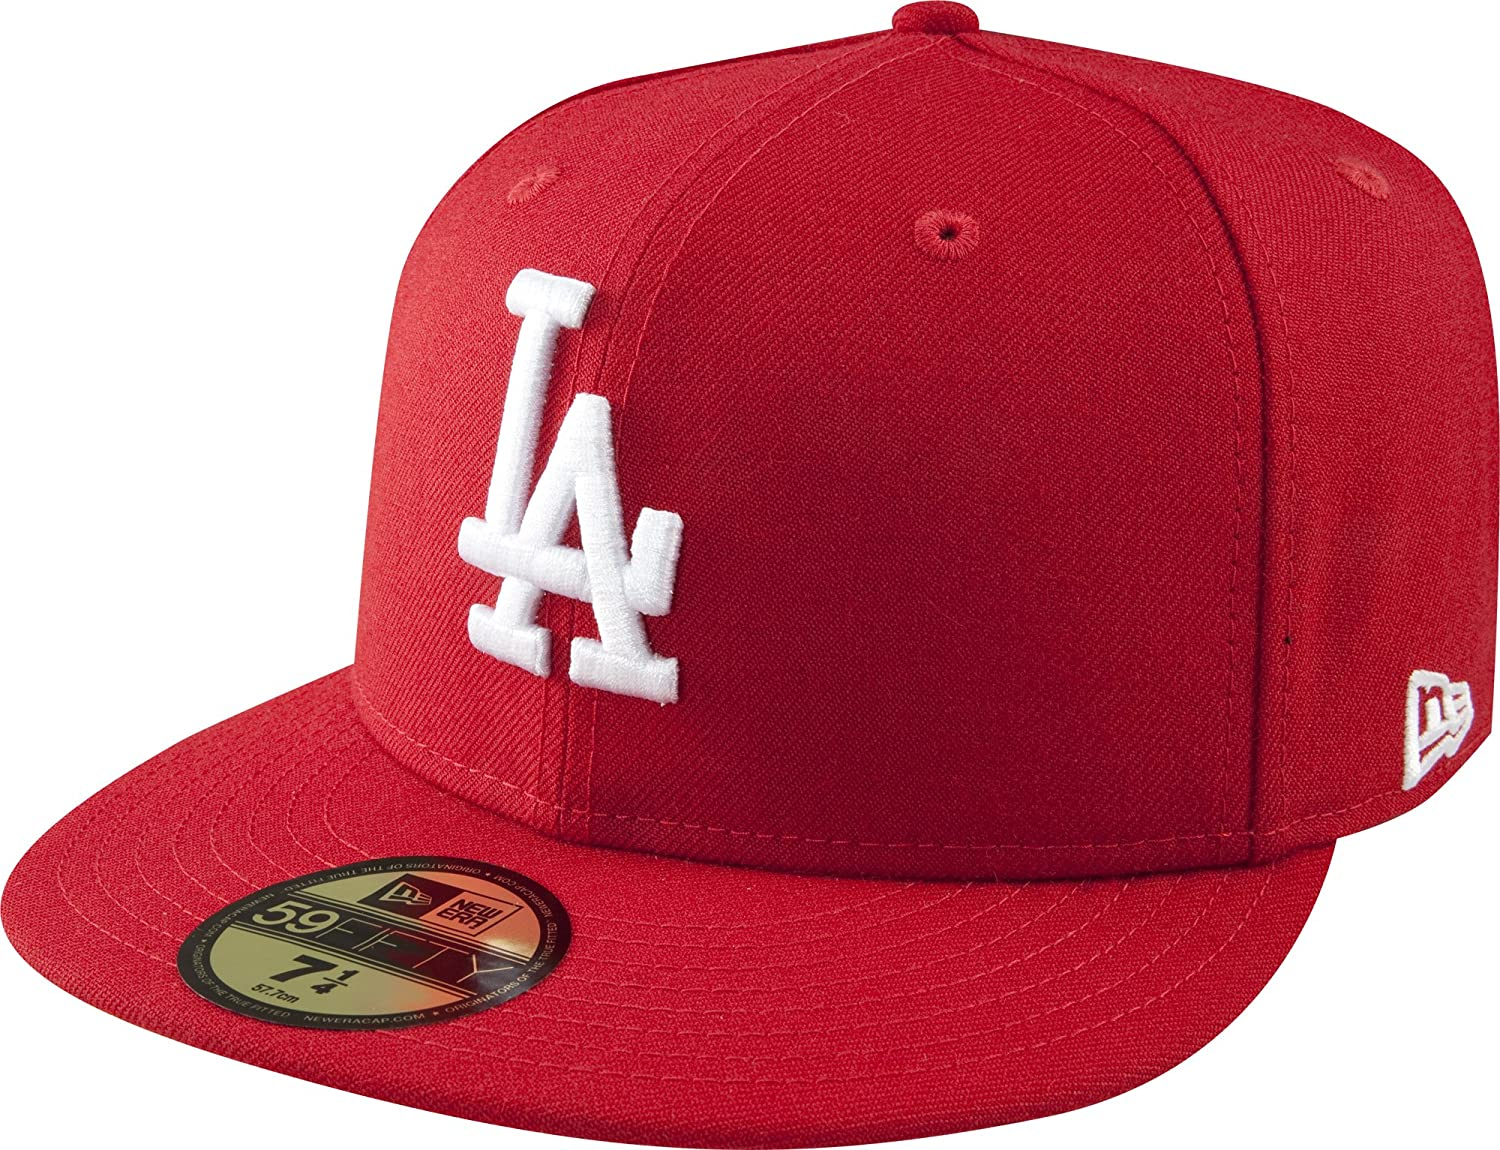 New Era 59Fifty Hat MLB Los Angeles Dodgers Mens Black Red Thread Fitted Cap